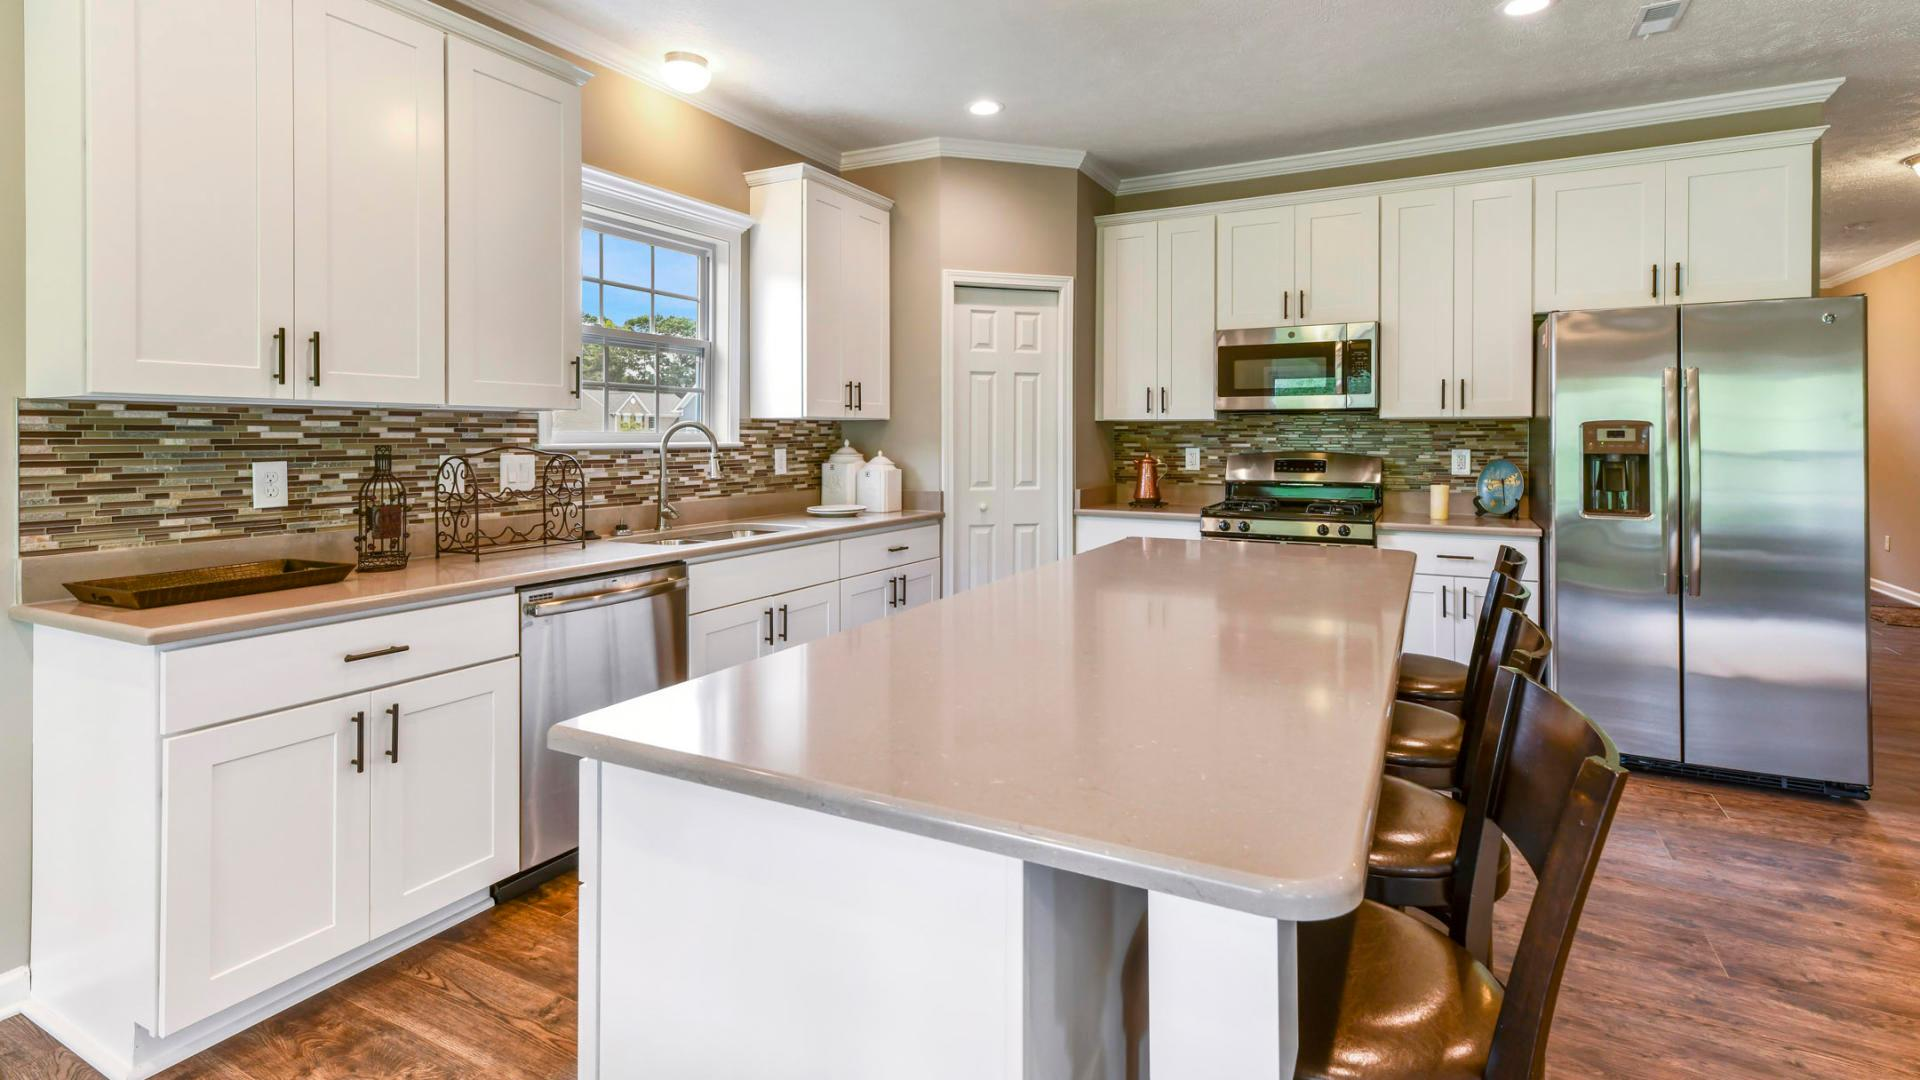 Kitchen featured in the Sanibel By Maronda Homes in Pittsburgh, PA